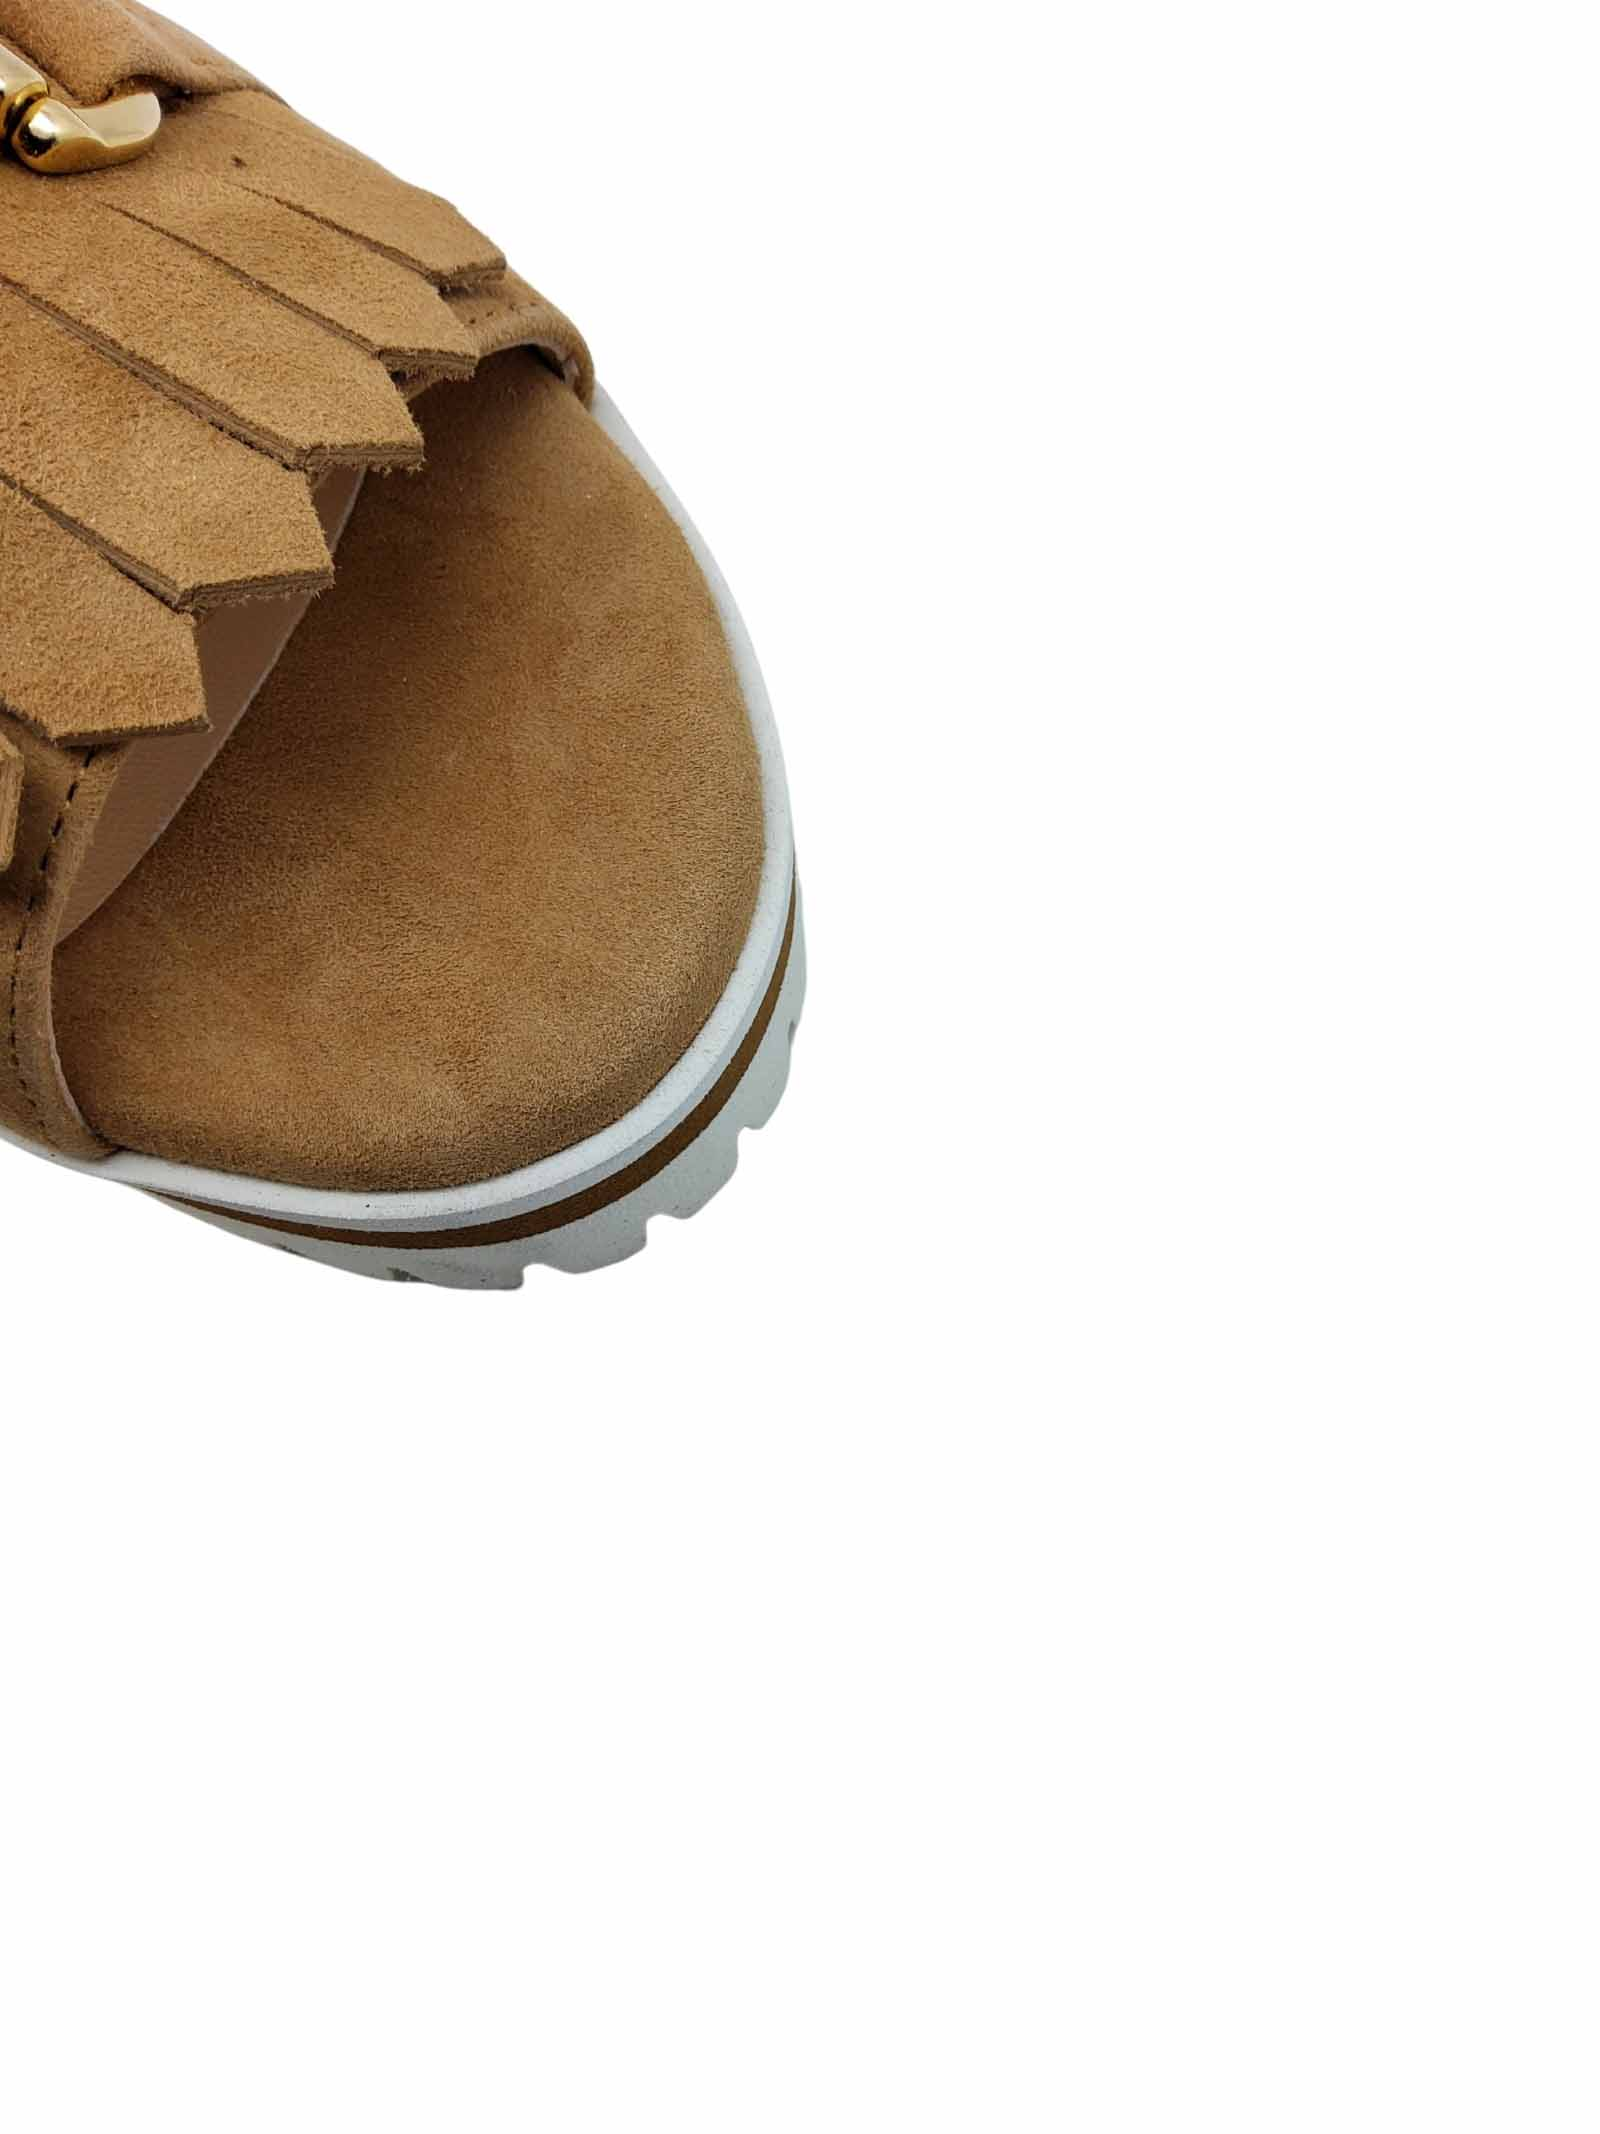 Women's Shoes Sandals in Leather Suede with Fringes and Gold Clamp Low Wedge Wedge Spatarella | Sandals | 3550014